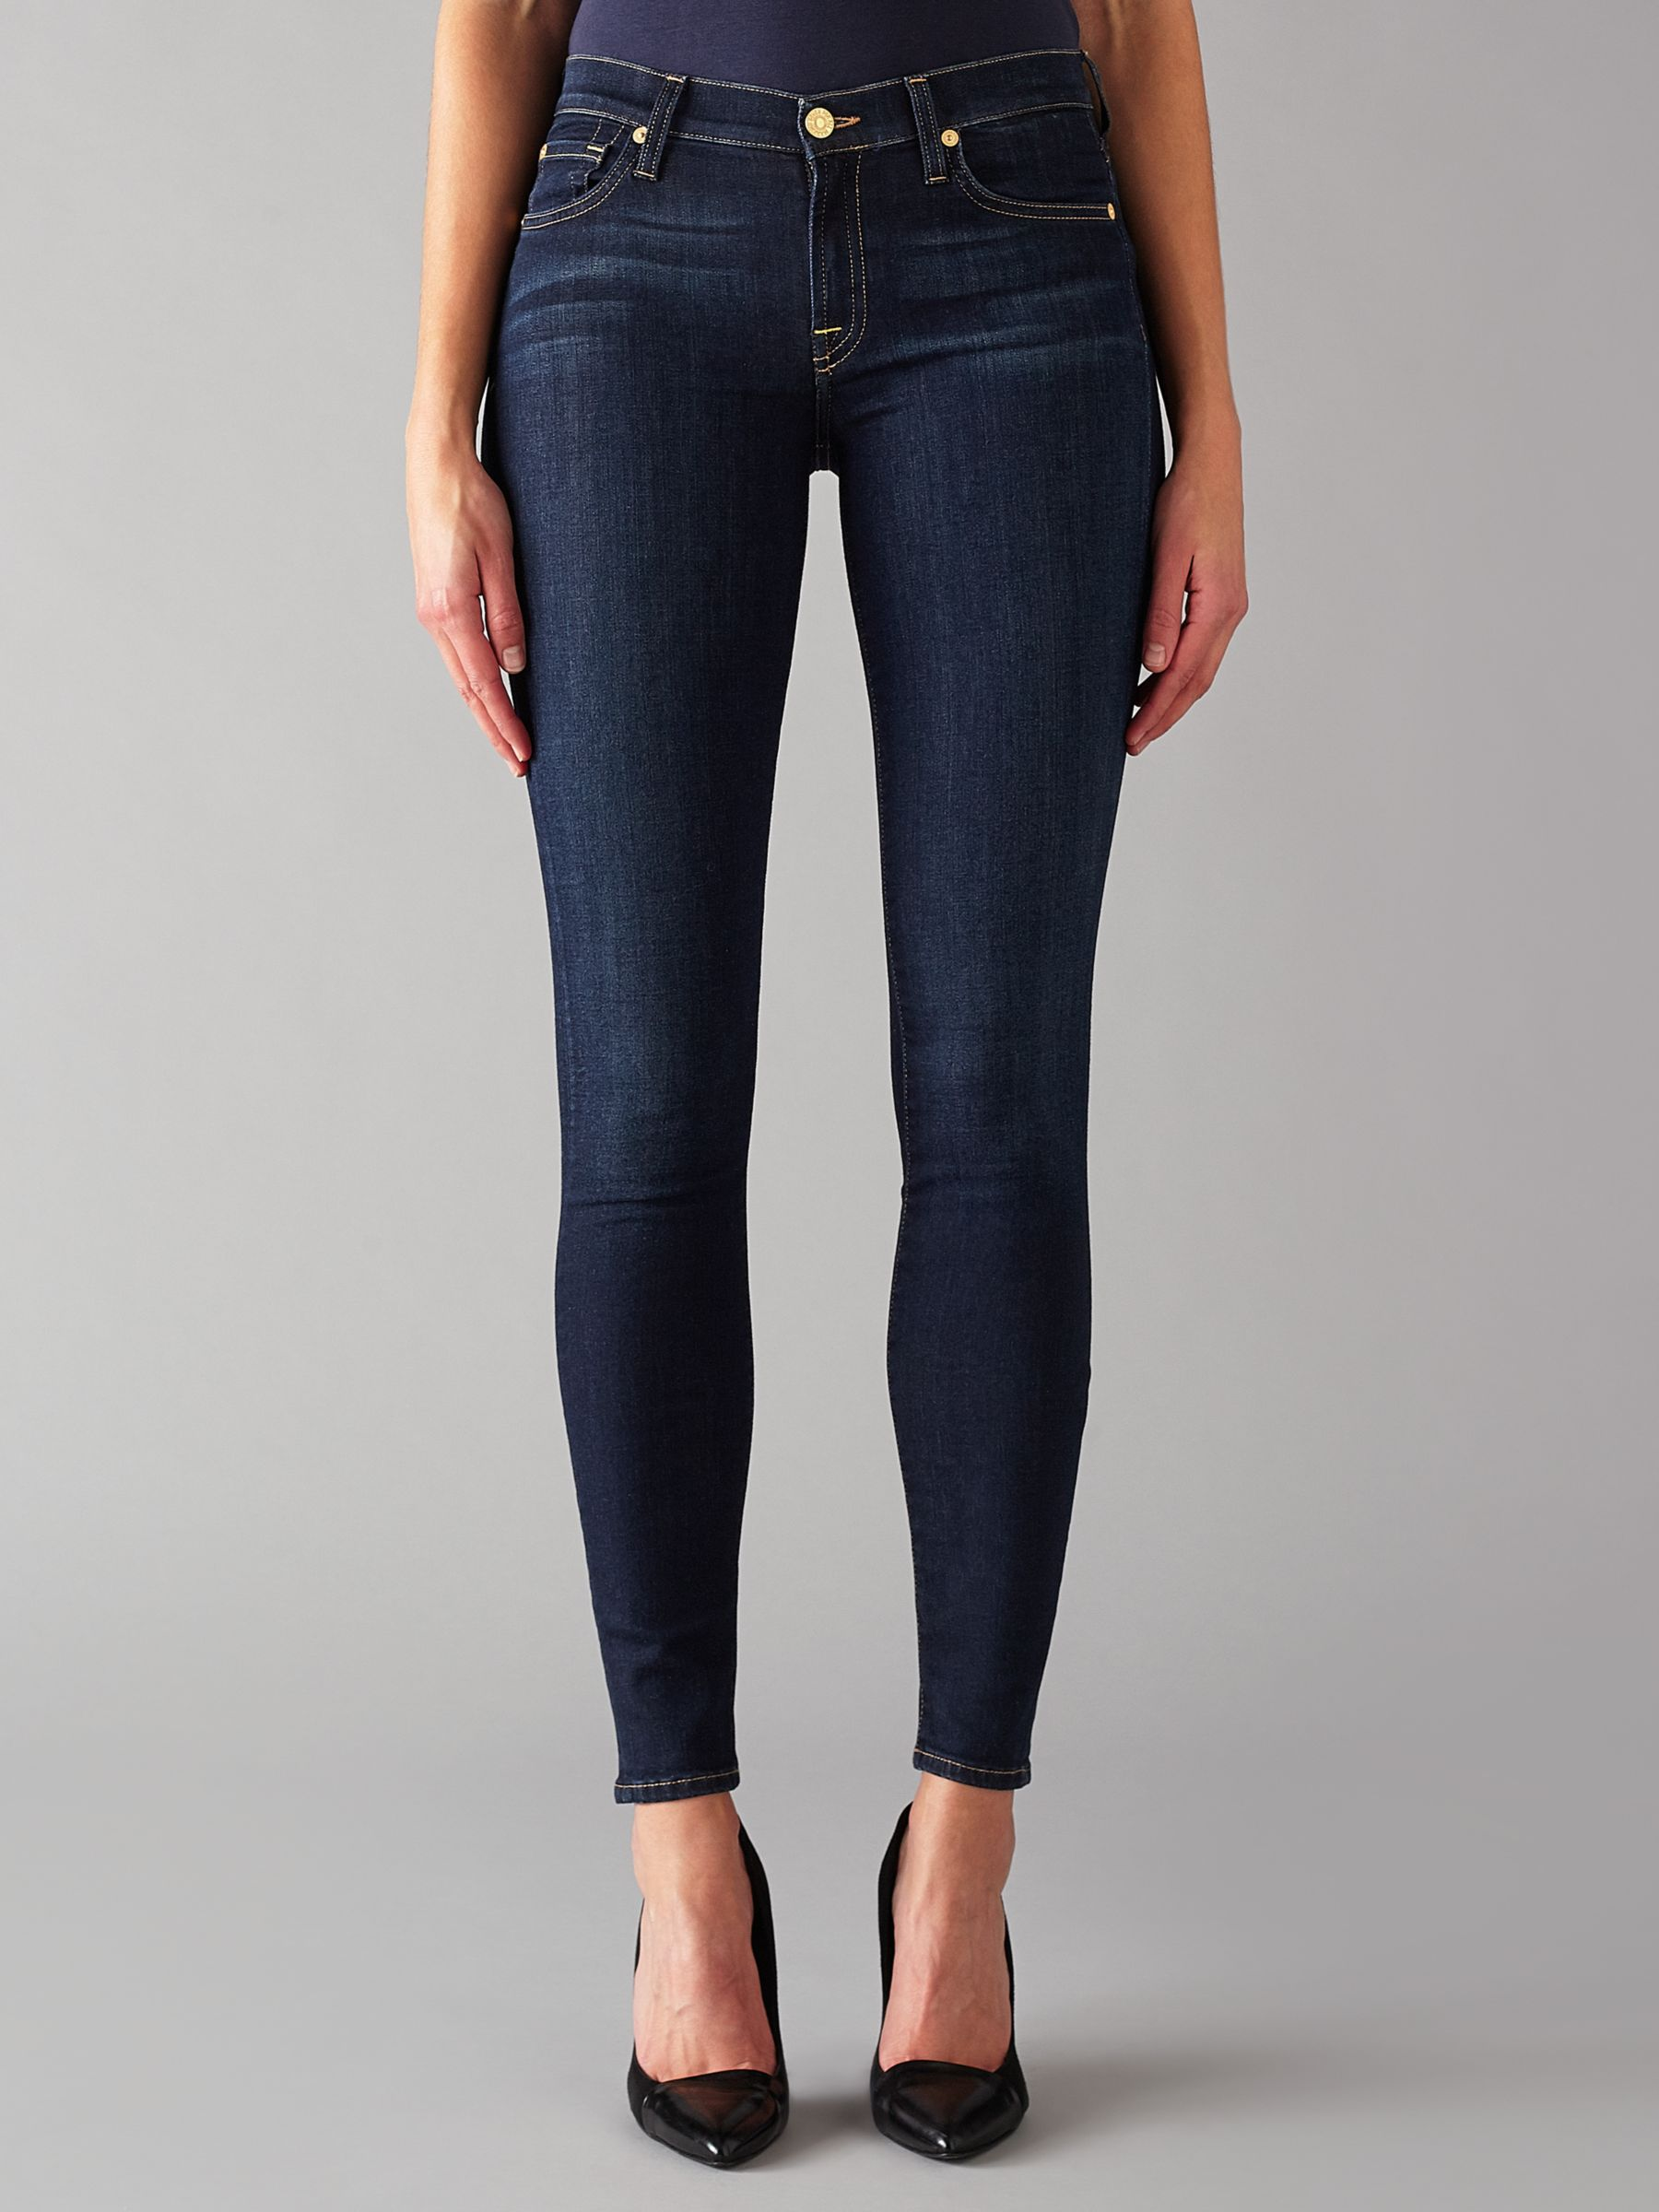 7 For All Mankind 7 For All Mankind The Skinny B(air) Jeans, Rinsed Indigo